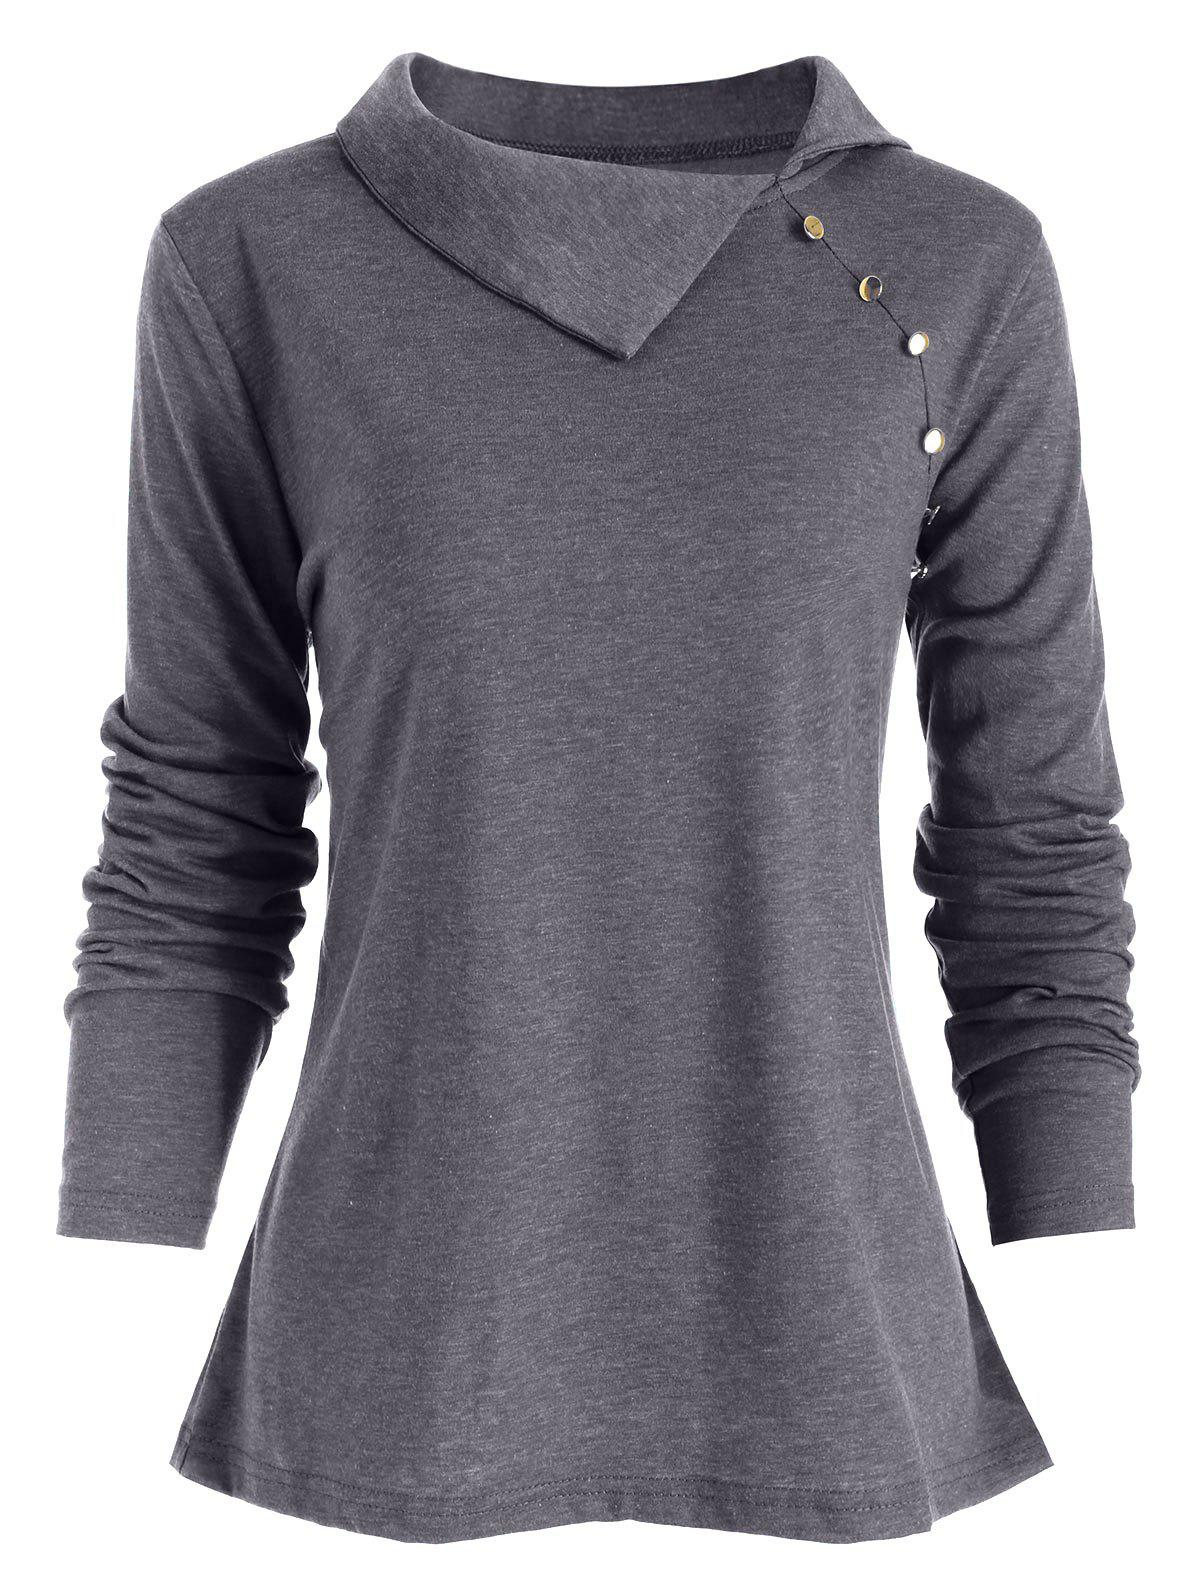 Image of Heather Button Embellished Turn-down Collar T-shirt